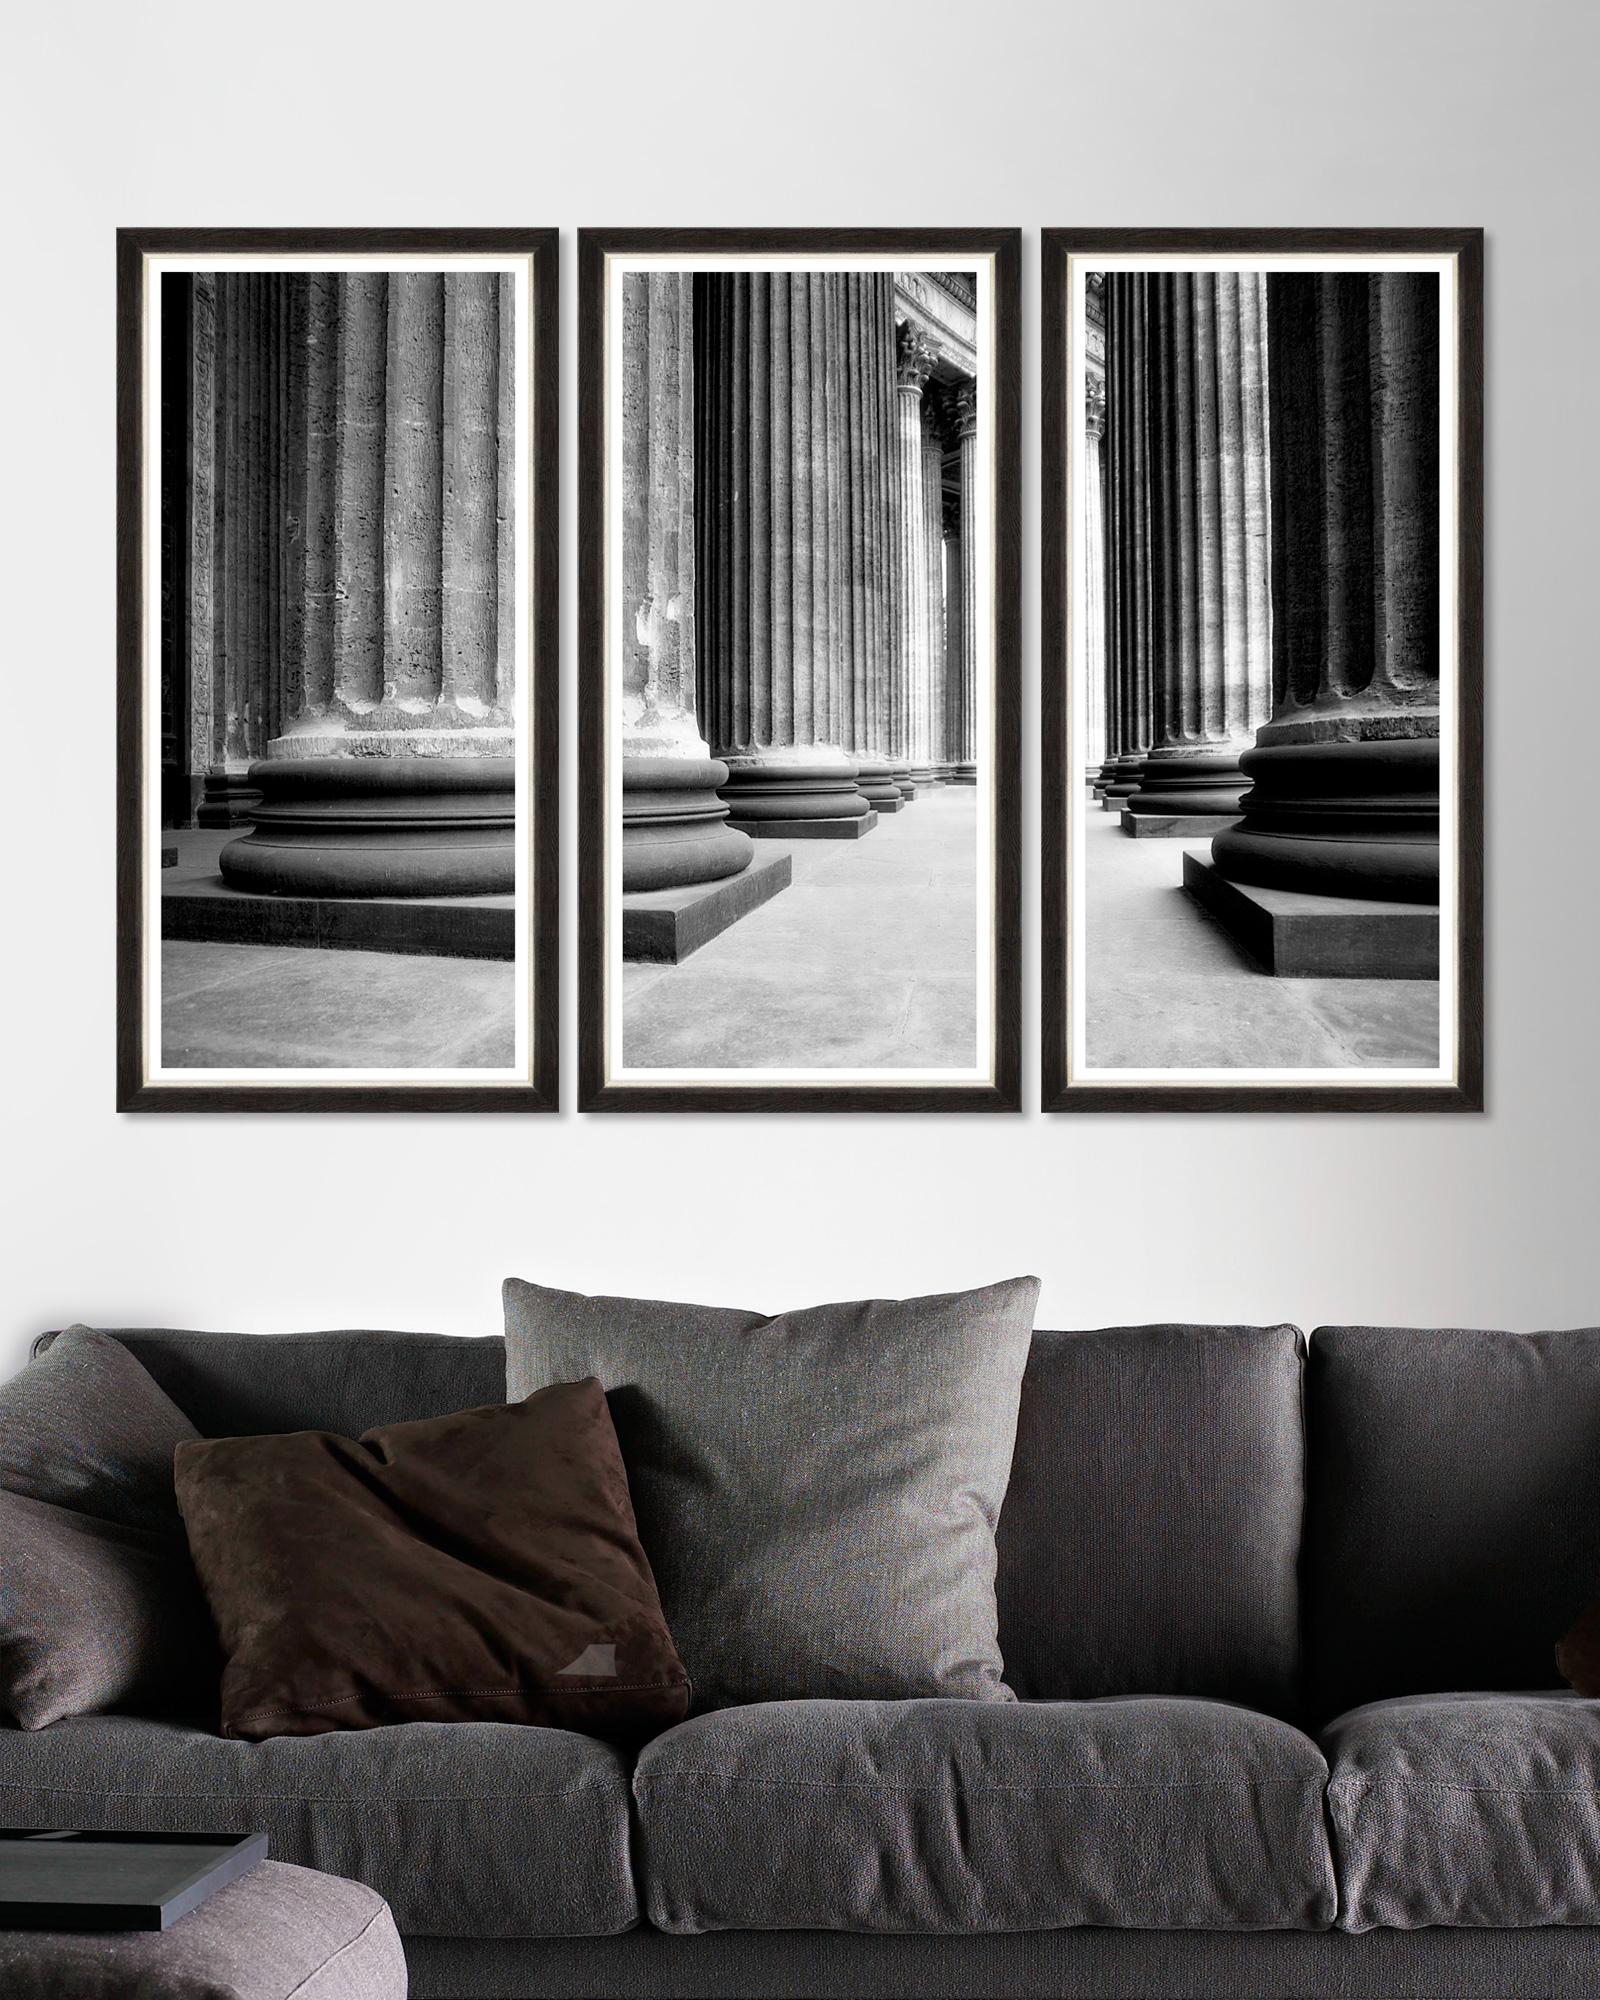 Tablou 3 piese Framed Art Church Colonnade Triptych imagine